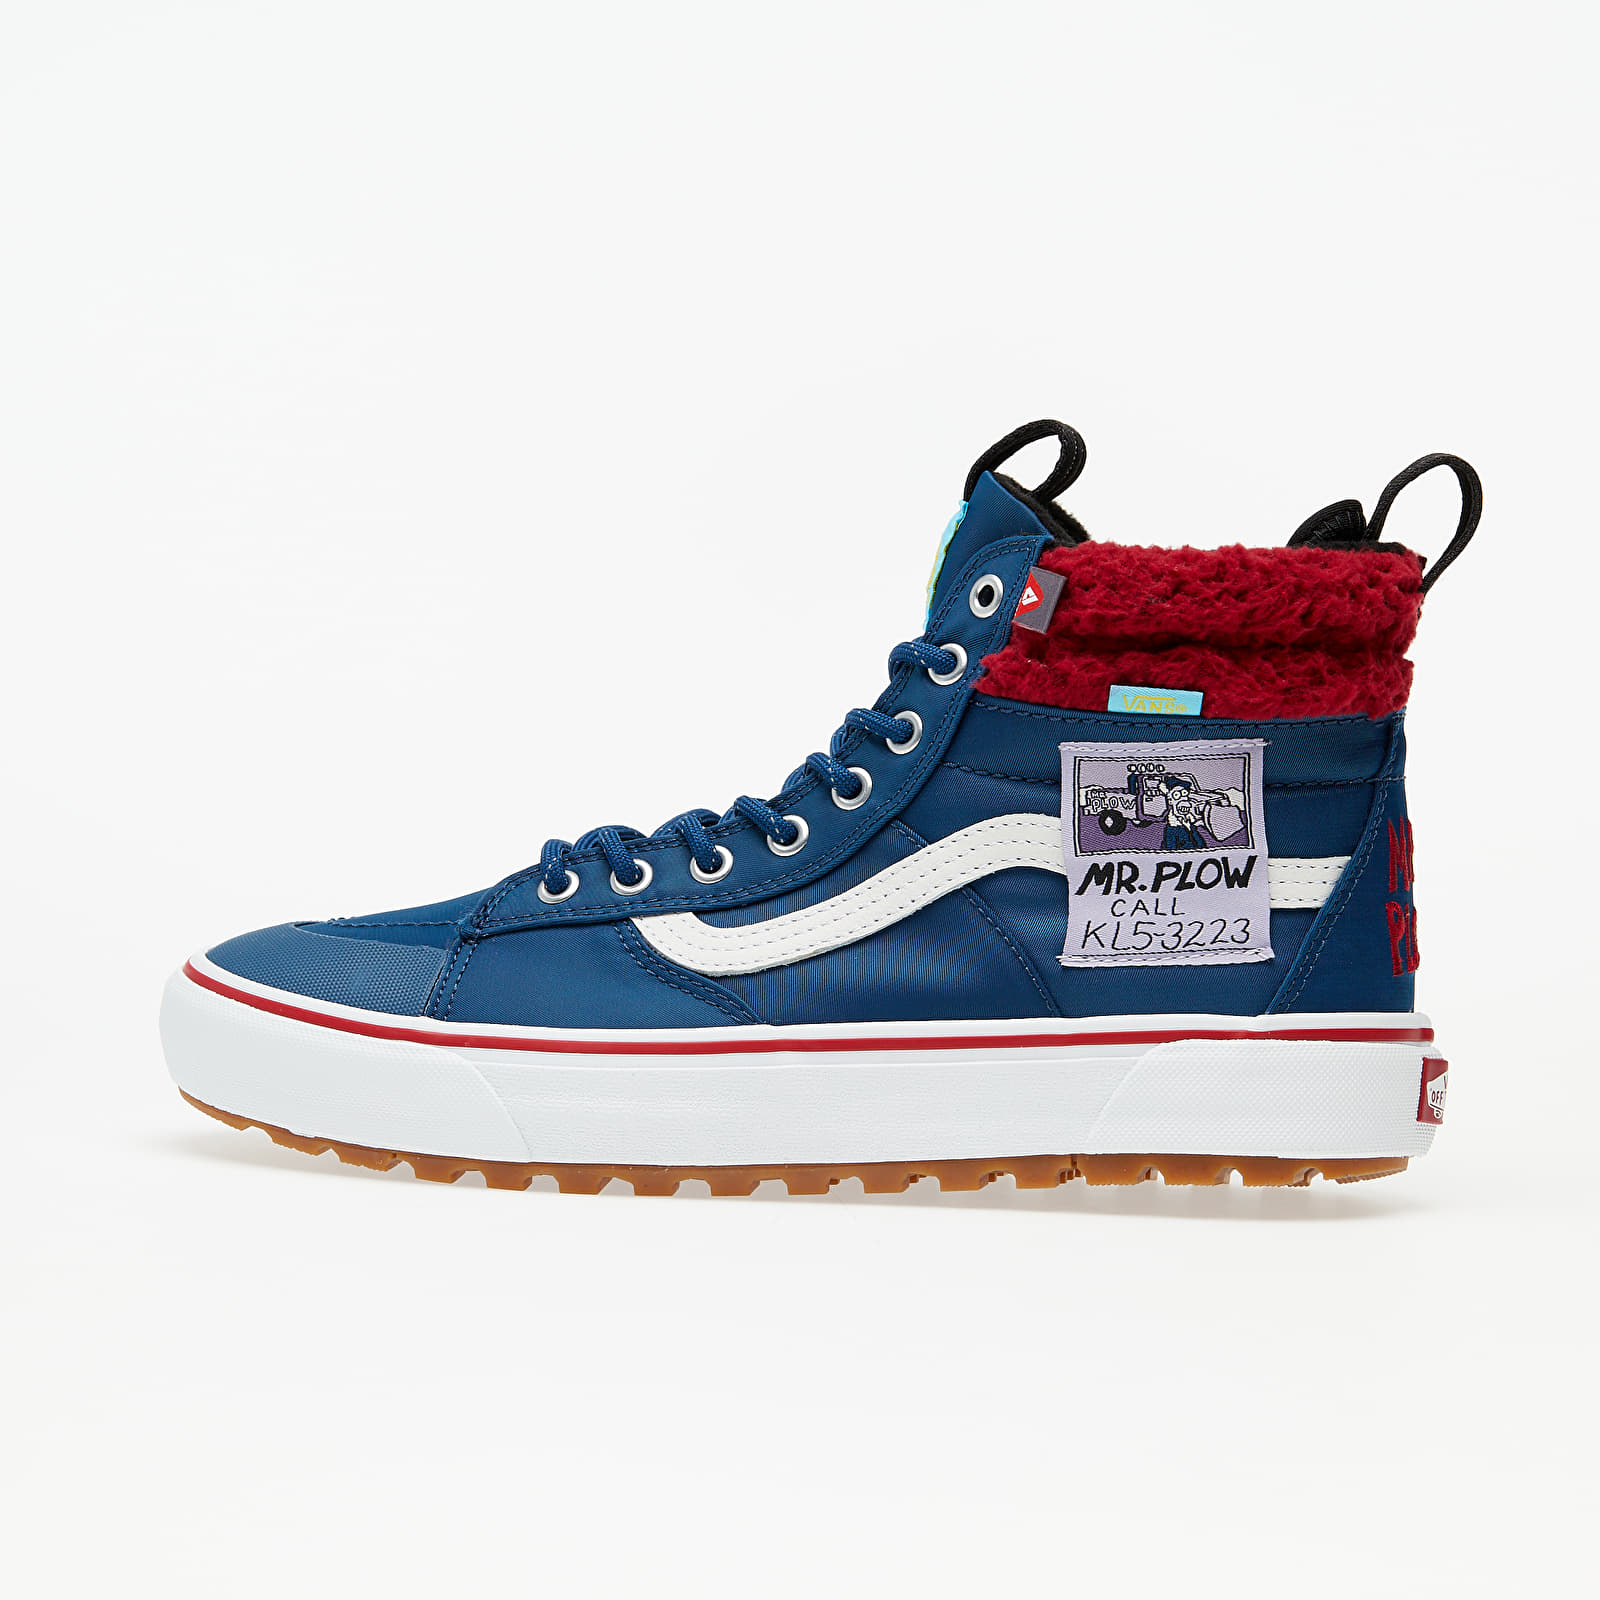 Männer Vans Sk8-Hi MTE 2.0 DX (The Simpsons) Mr. Plow